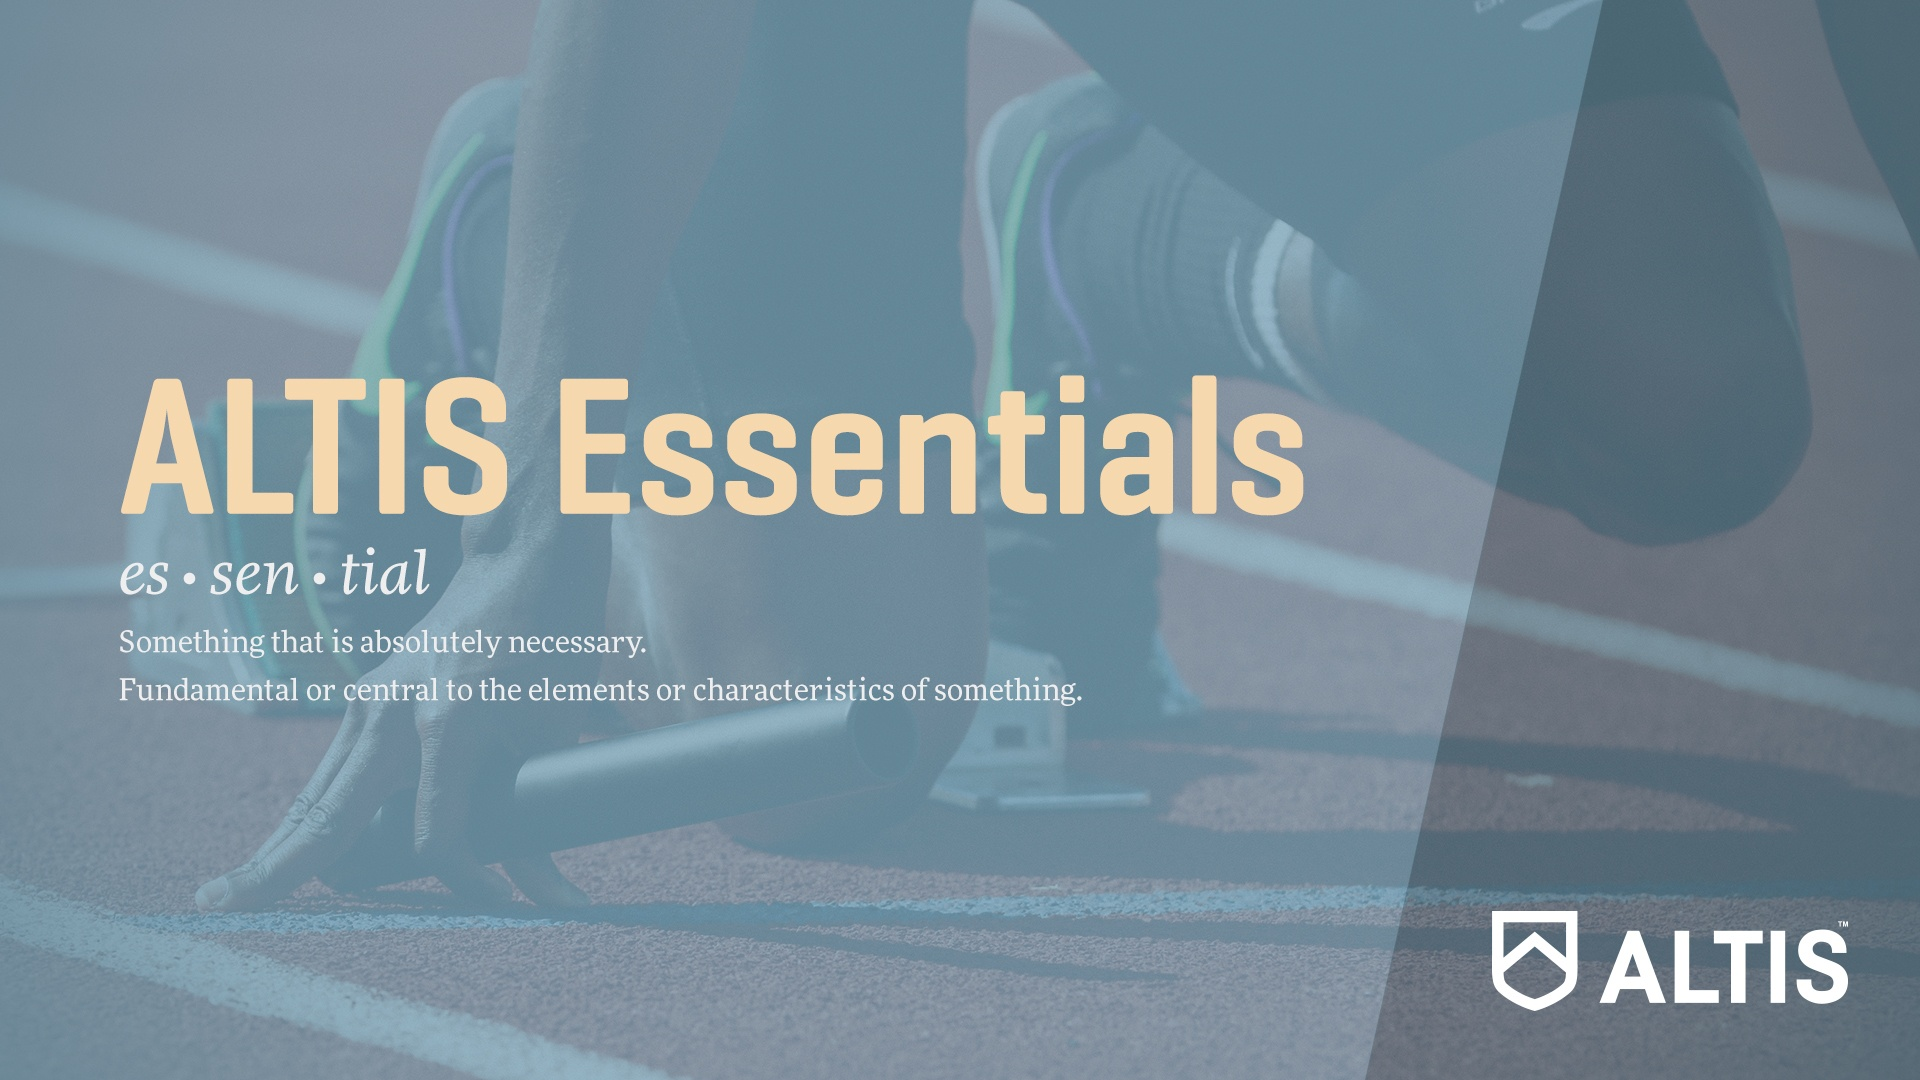 The ALTIS Essentials Course provides a streamlined digital learning experience.